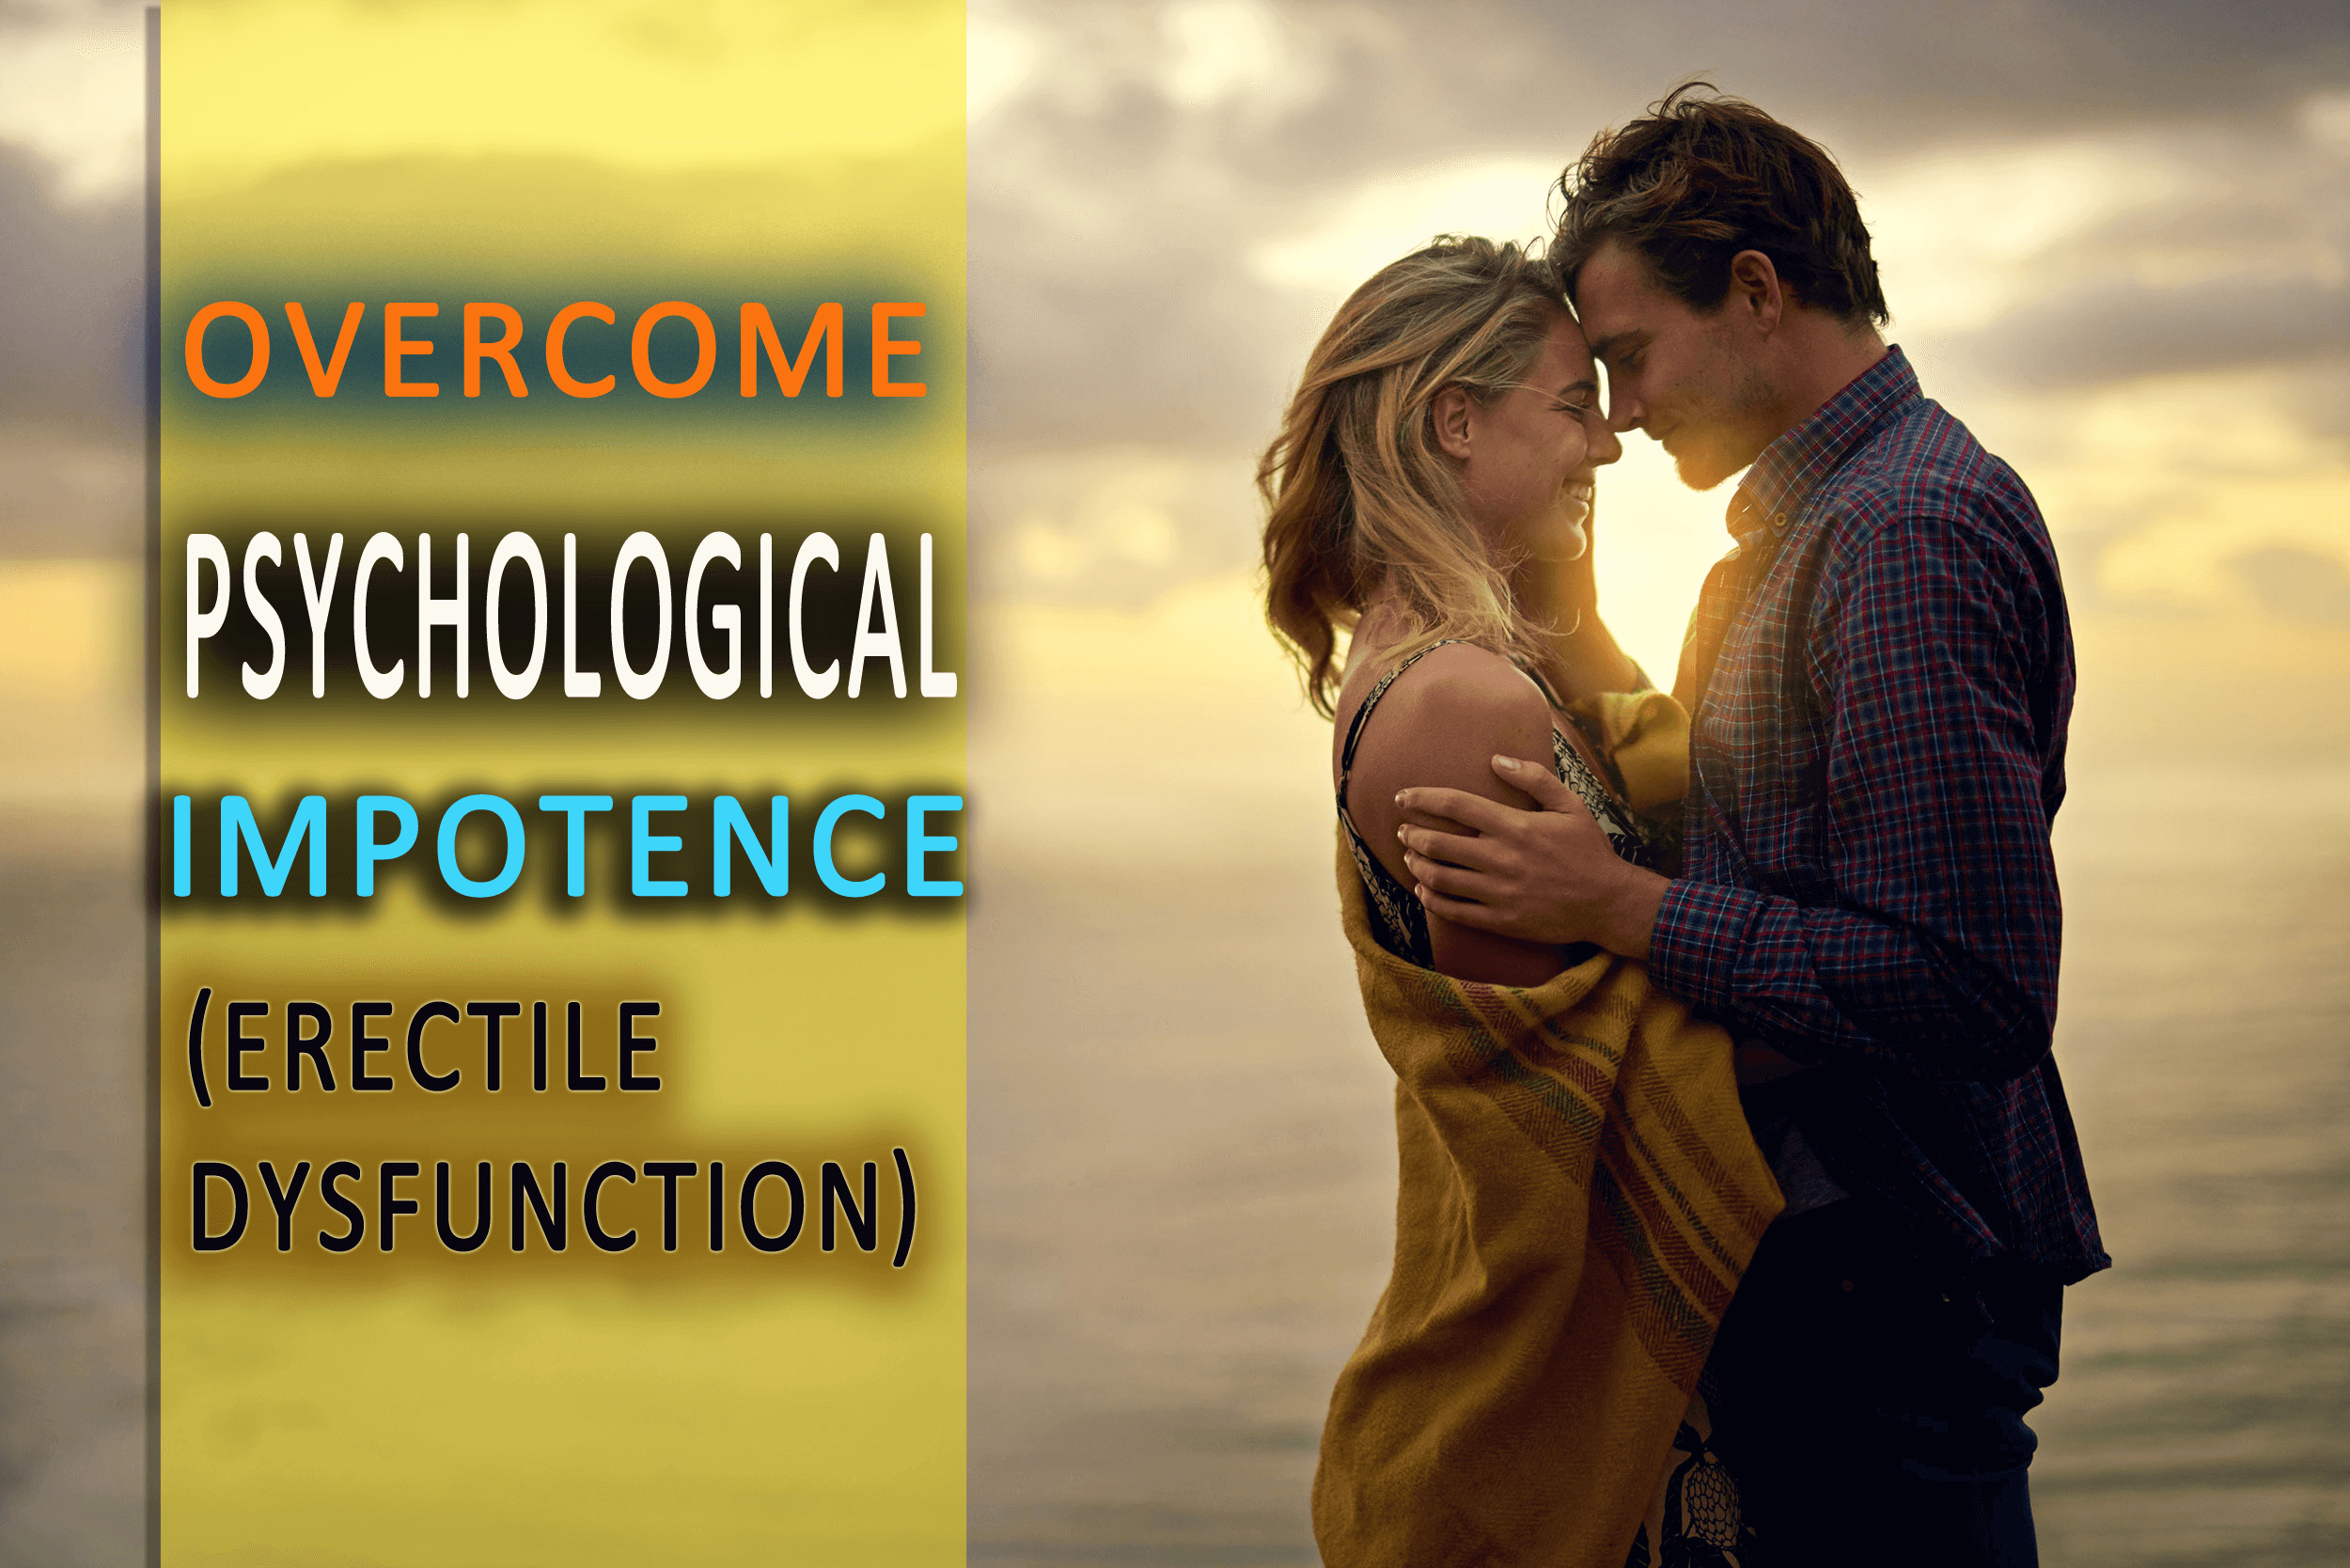 How To Overcome Psychological Impotence (Erectile Dysfunction)